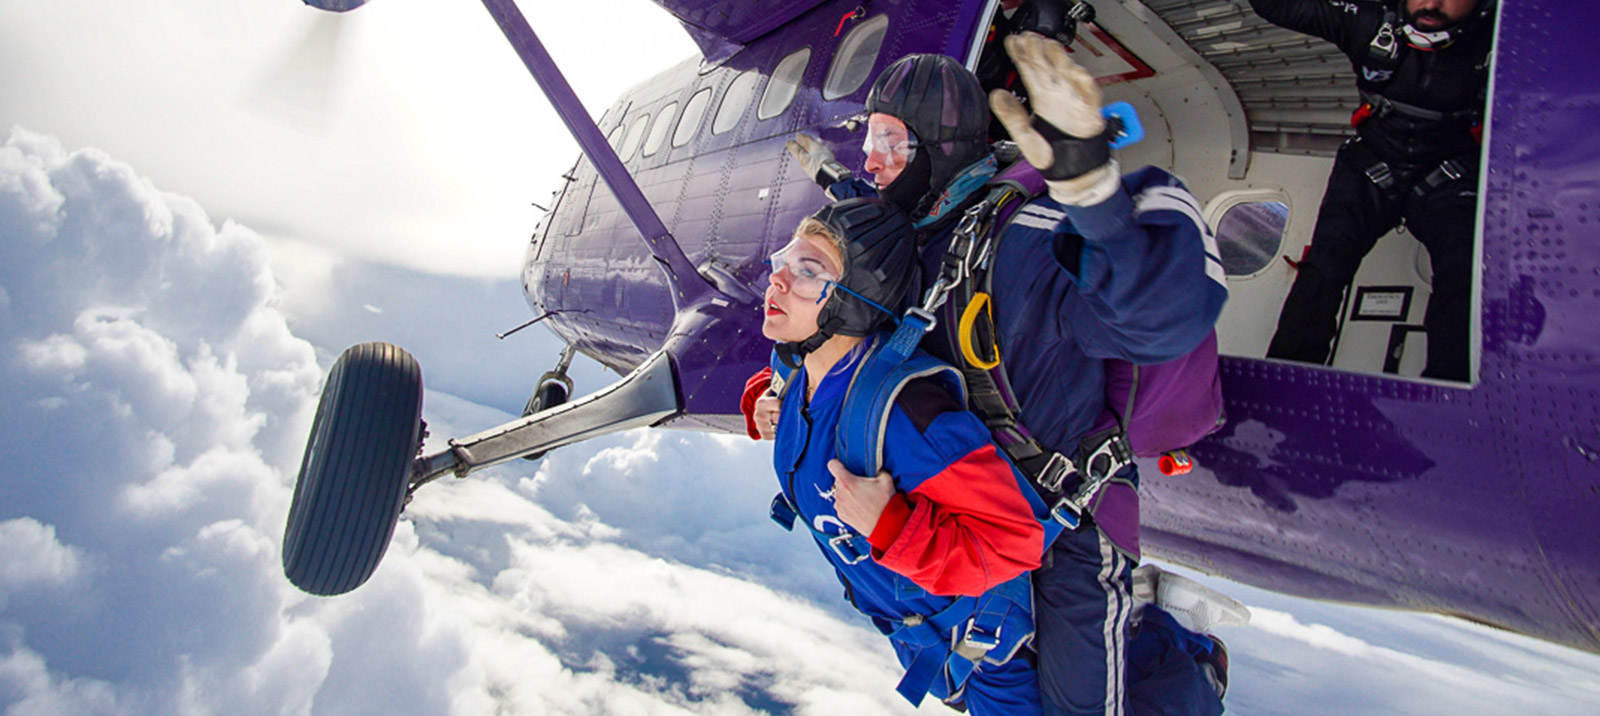 Skydiving Confirmation   North London Skydiving   Thank you